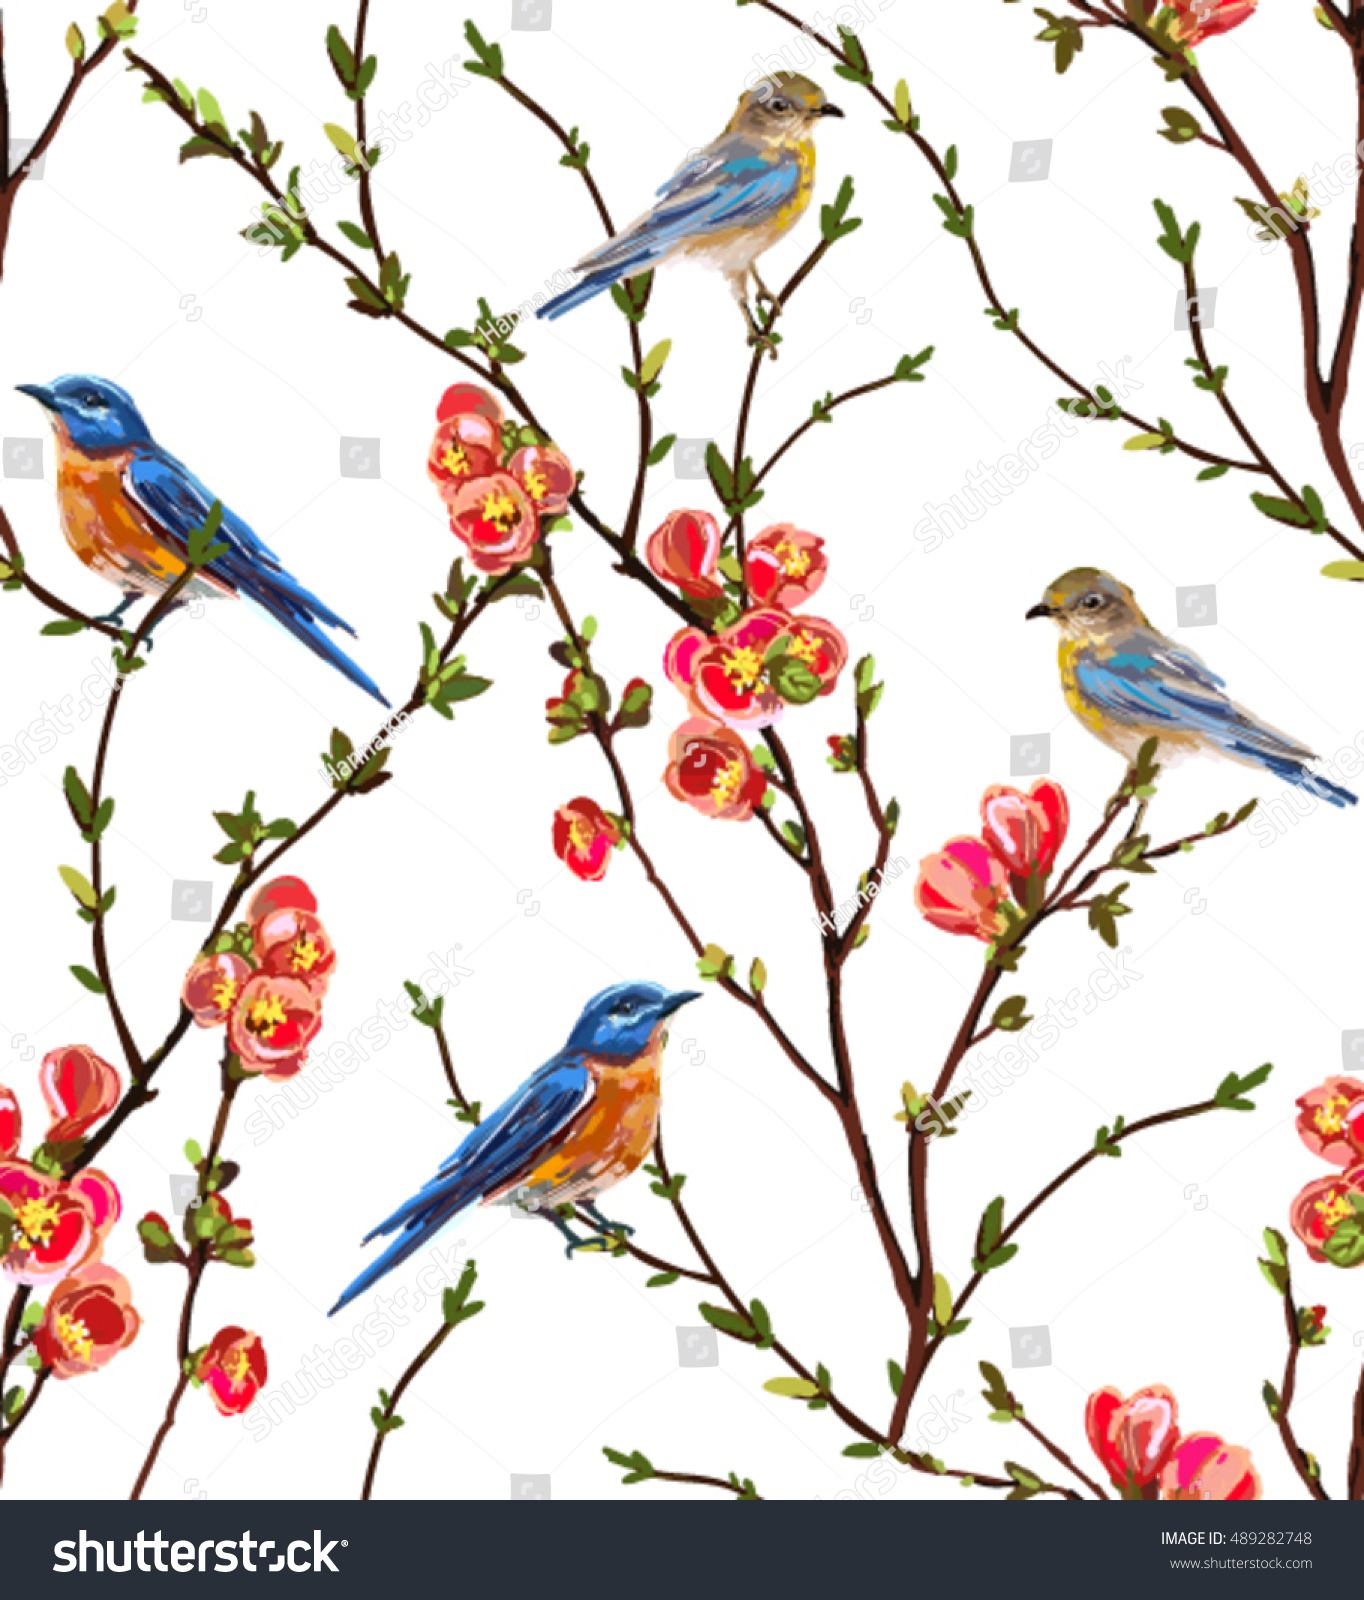 wallpaper tropical birds and foliage - photo #24